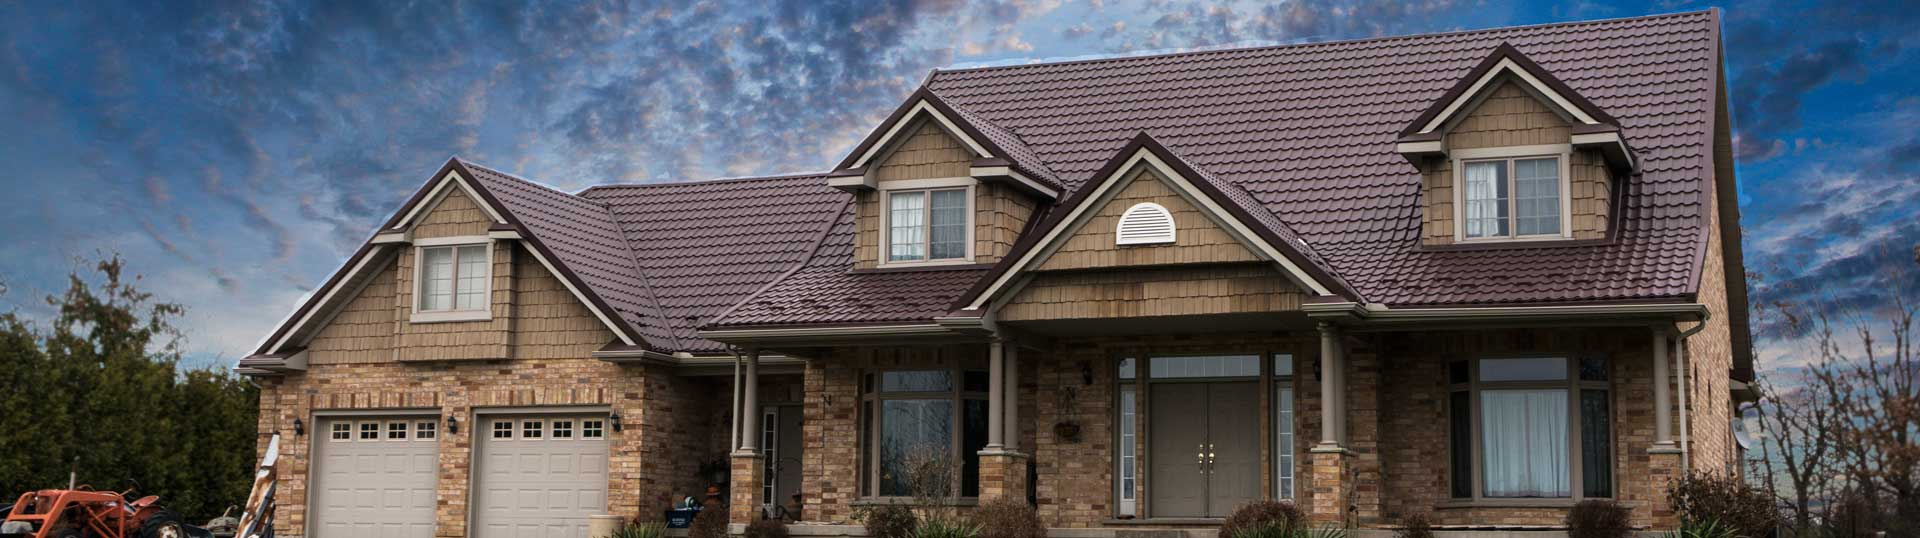 Metal Roofing Slider Image Windsor, Ontario